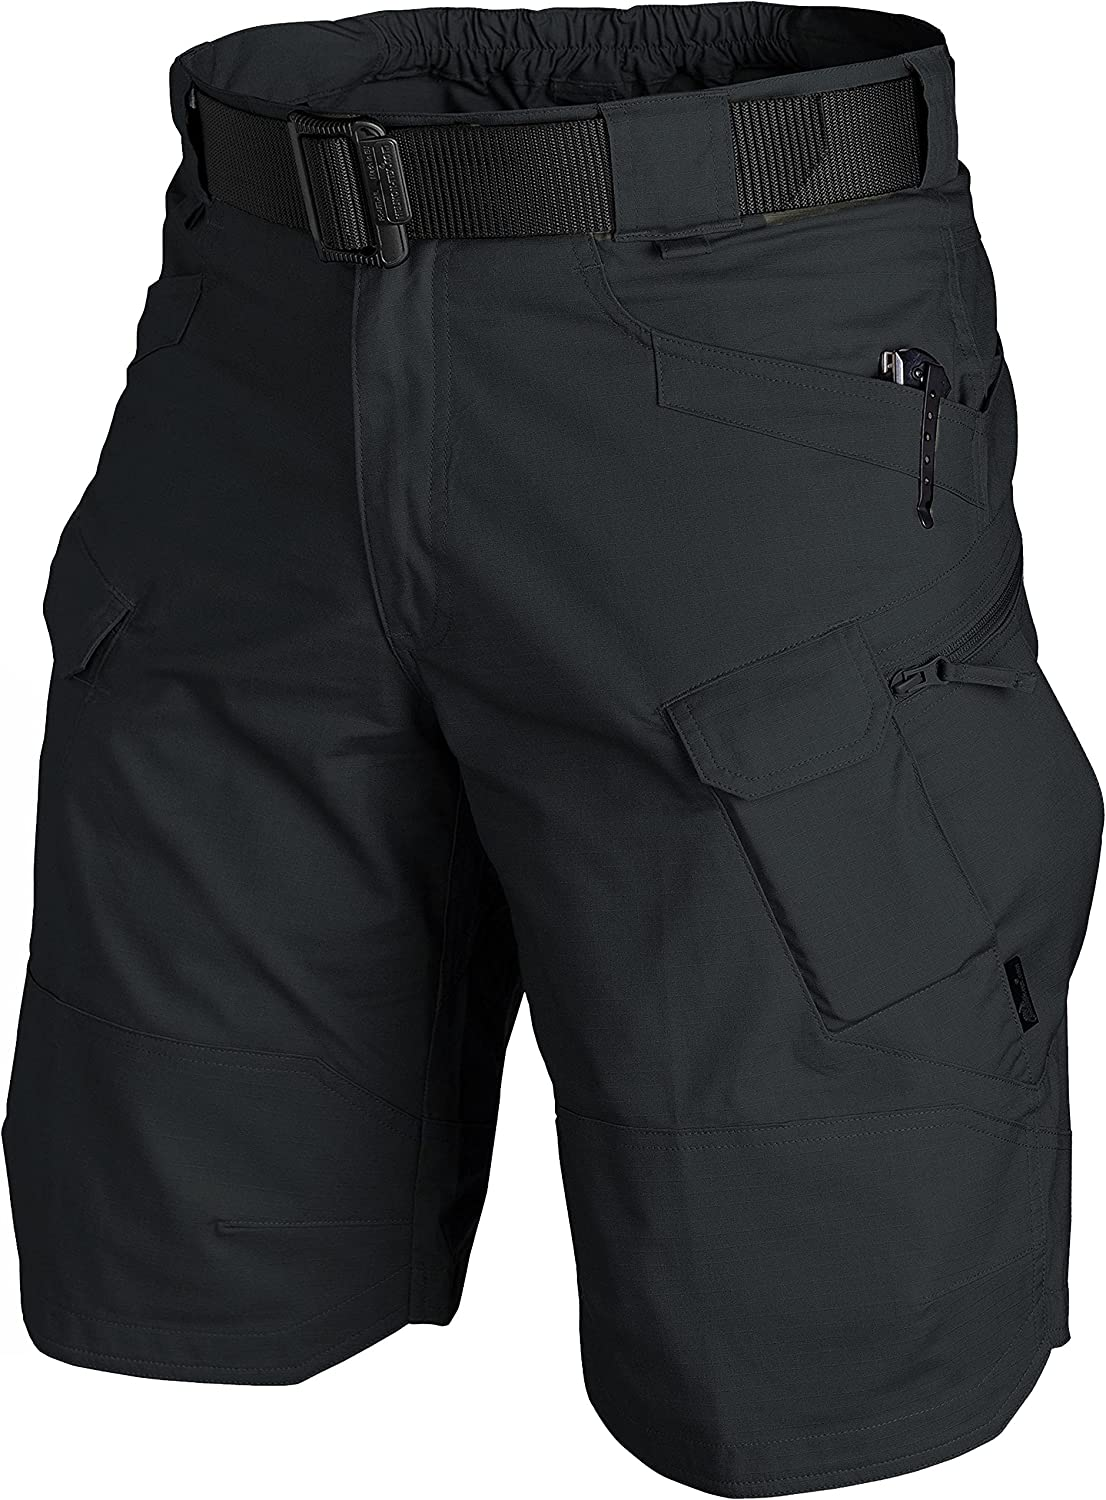 PrunGoo Cargo Shorts Men Waterproof Tactical Shorts for Men Breathable Hiking Shorts Men Quick Dry Outdoor |